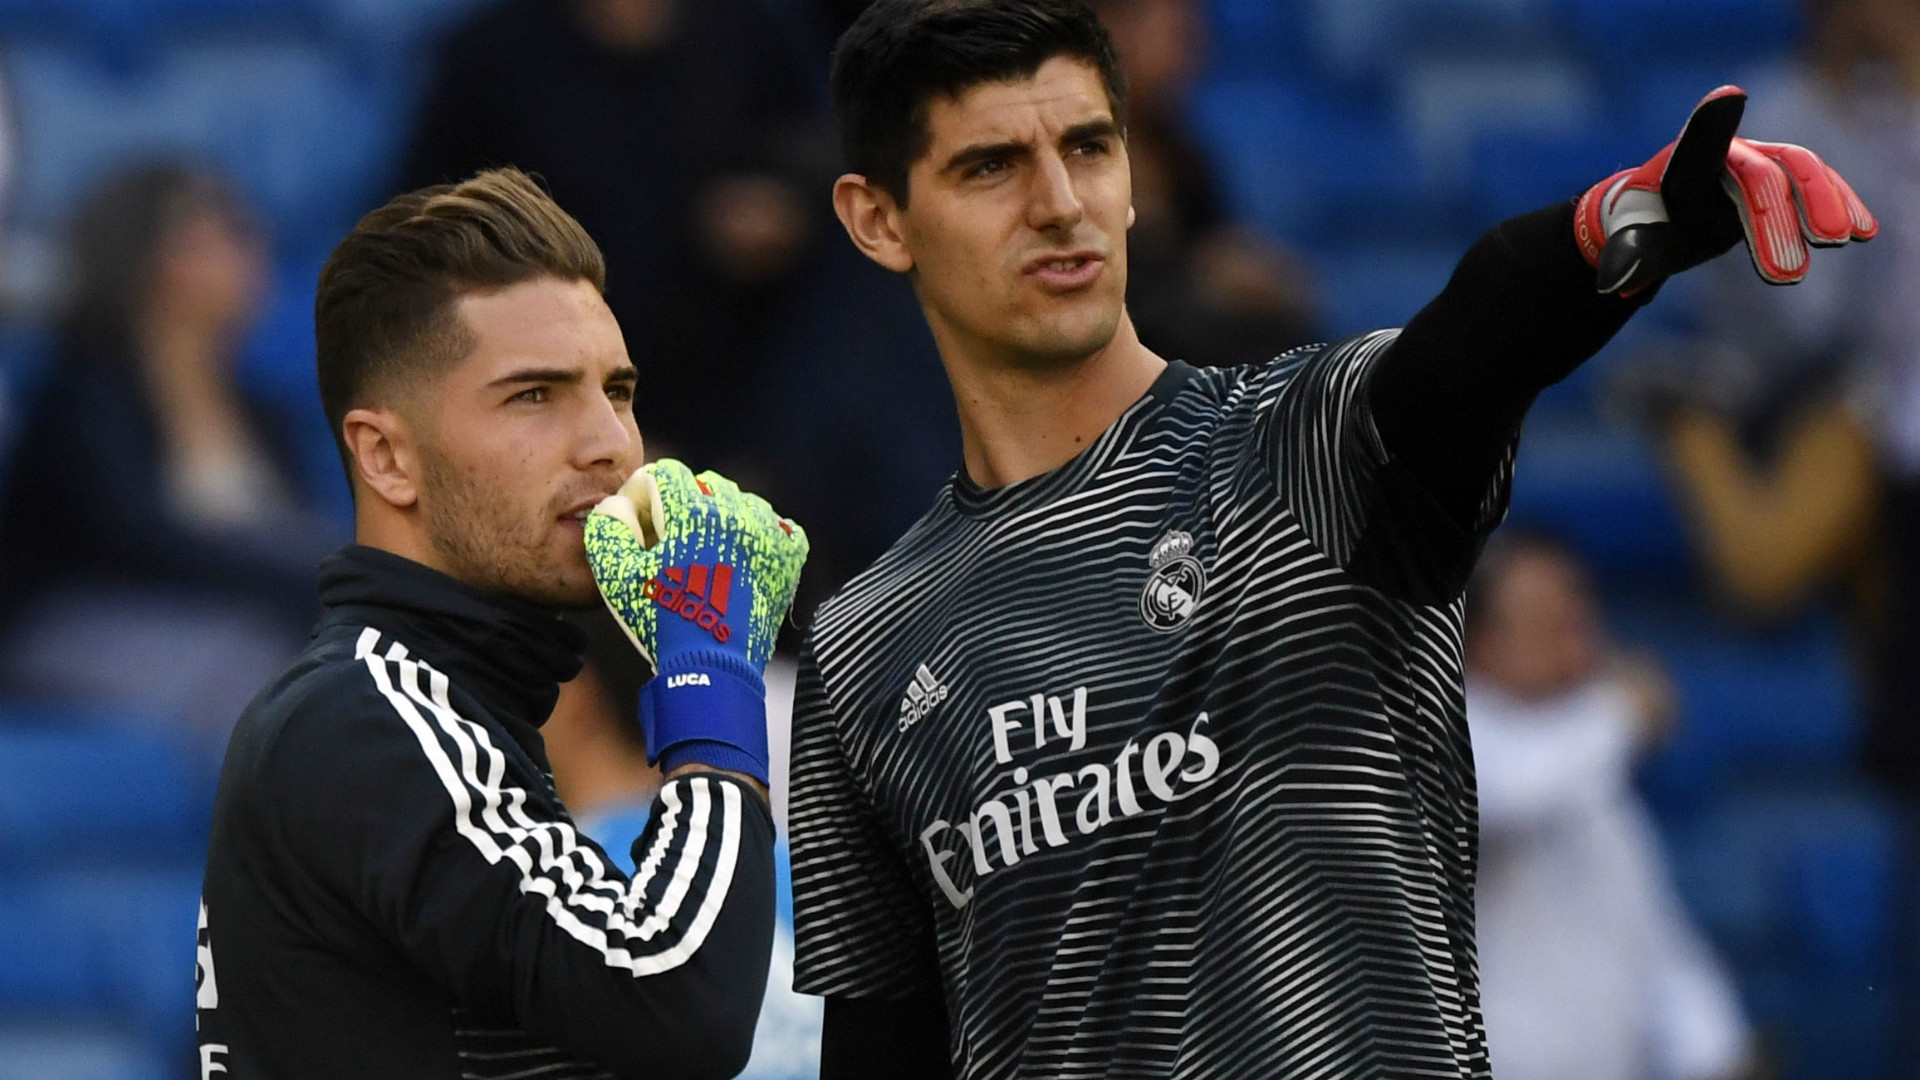 LUCA ZIDANE THIBAUT COURTOIS REAL MADRID